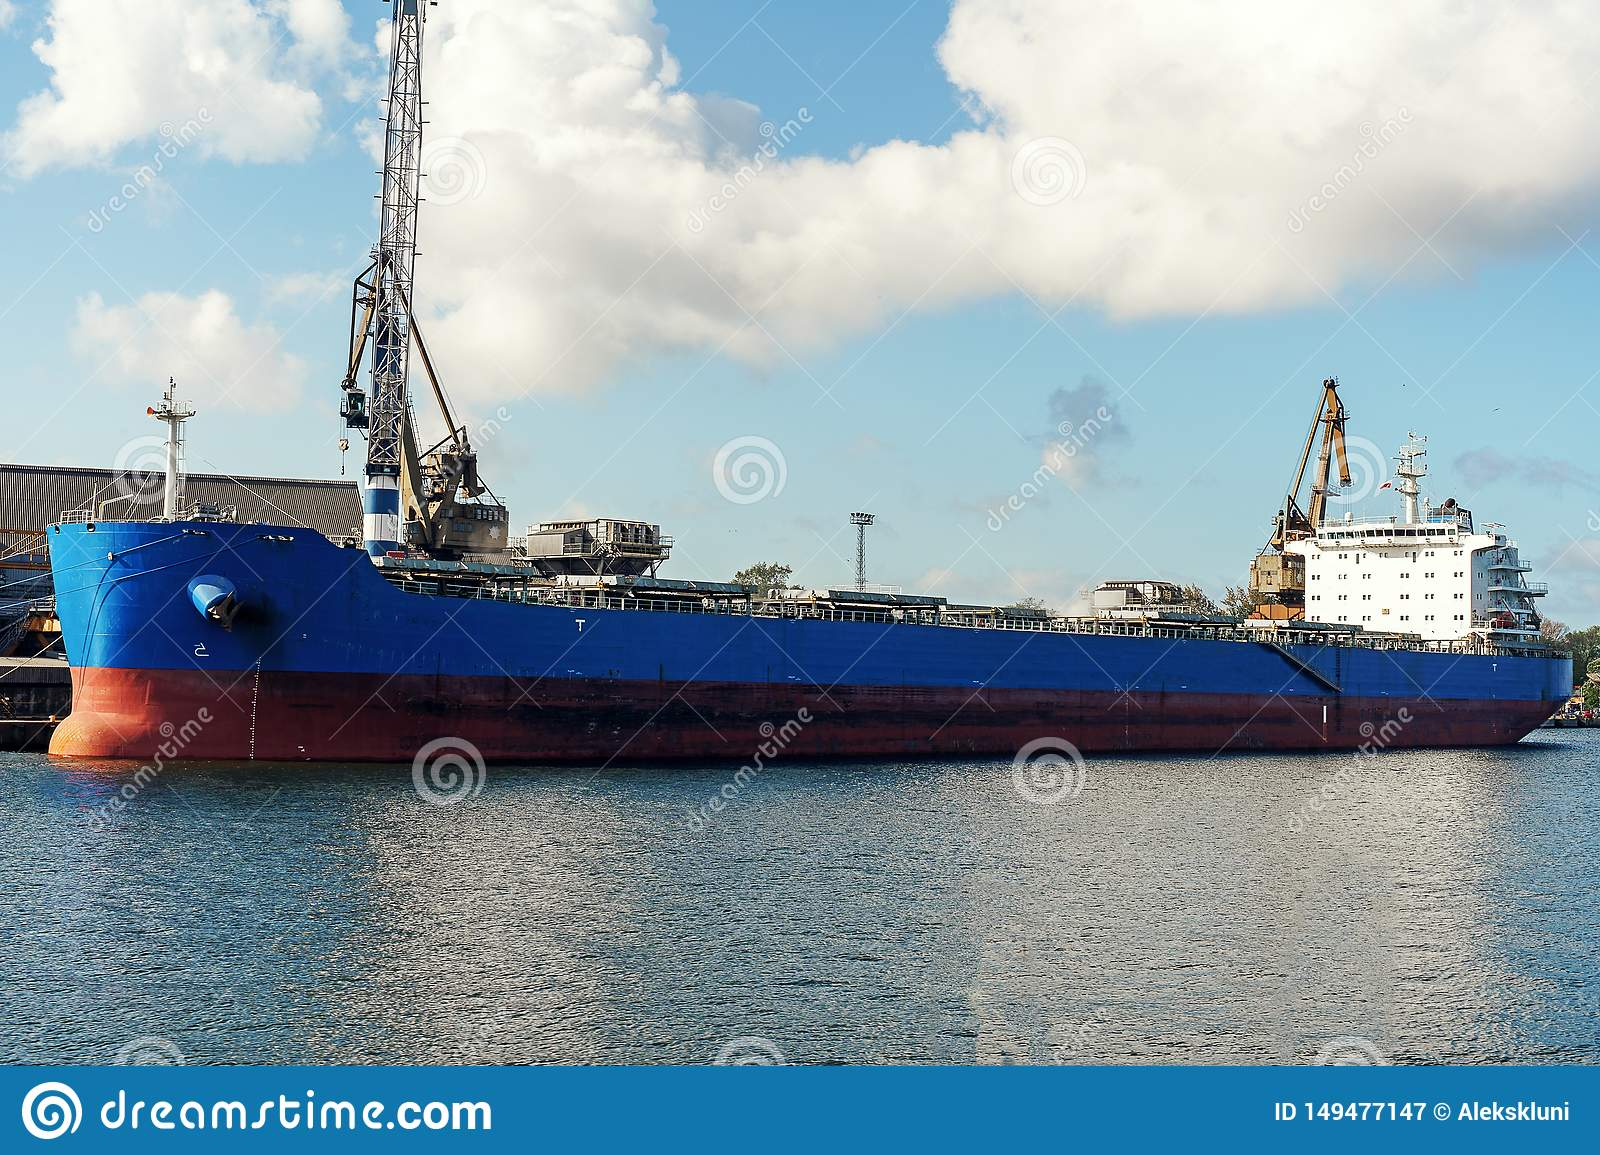 Big blue bulker cargo ship moored in the cargo port during cargo operation.